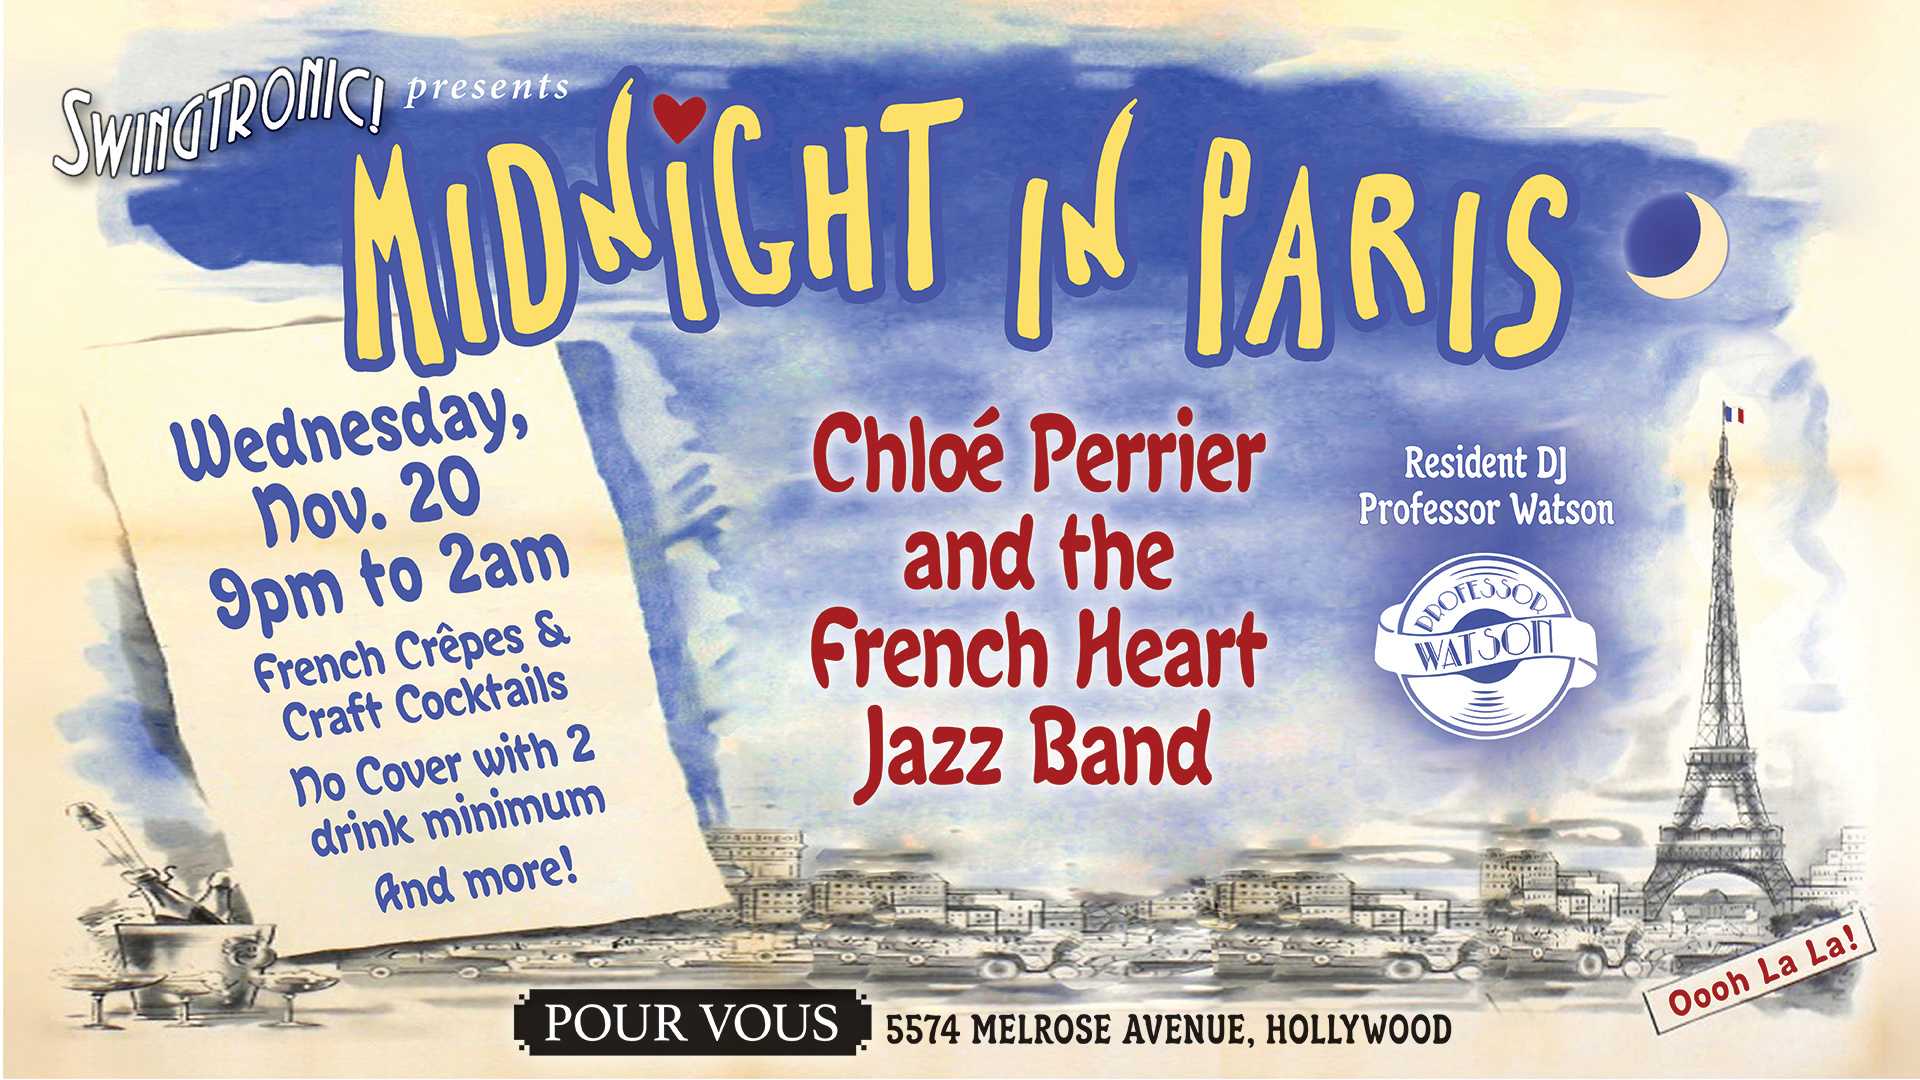 Swintronic_Midnight_Paris(FB1920x1080)_0